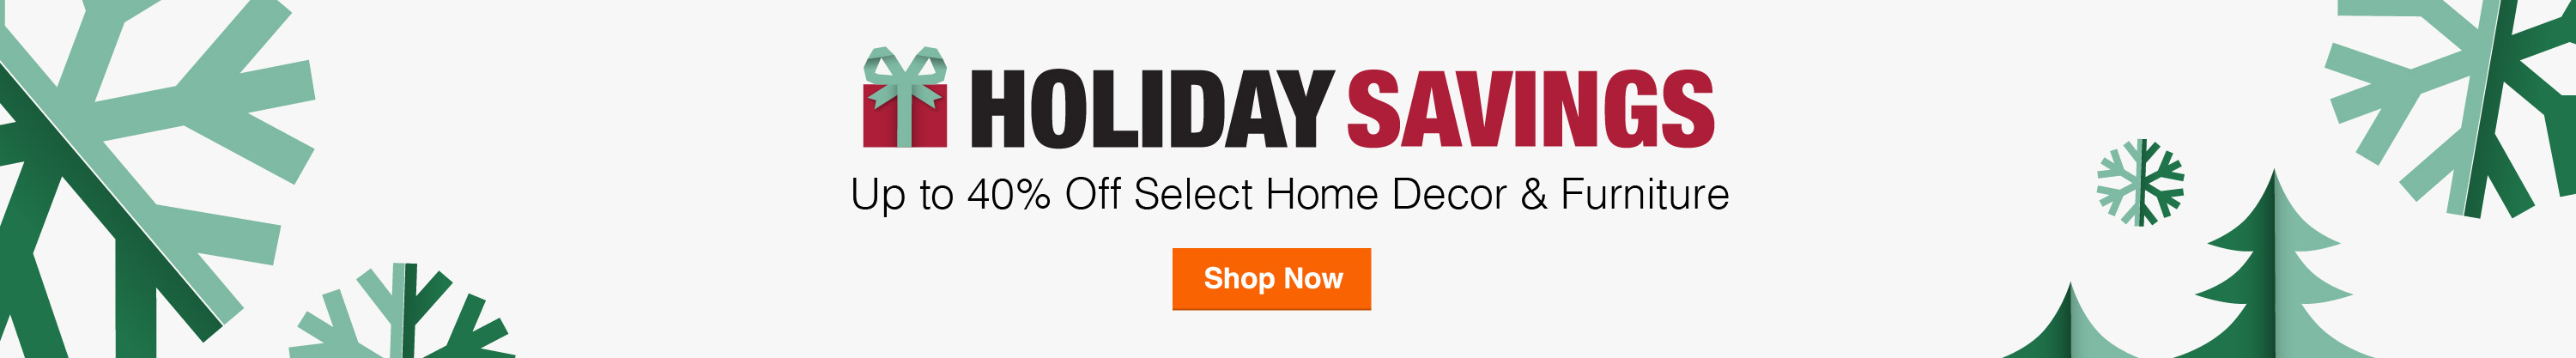 Holiday Savings - Up to 40% Off Select Home Decor & Furniture